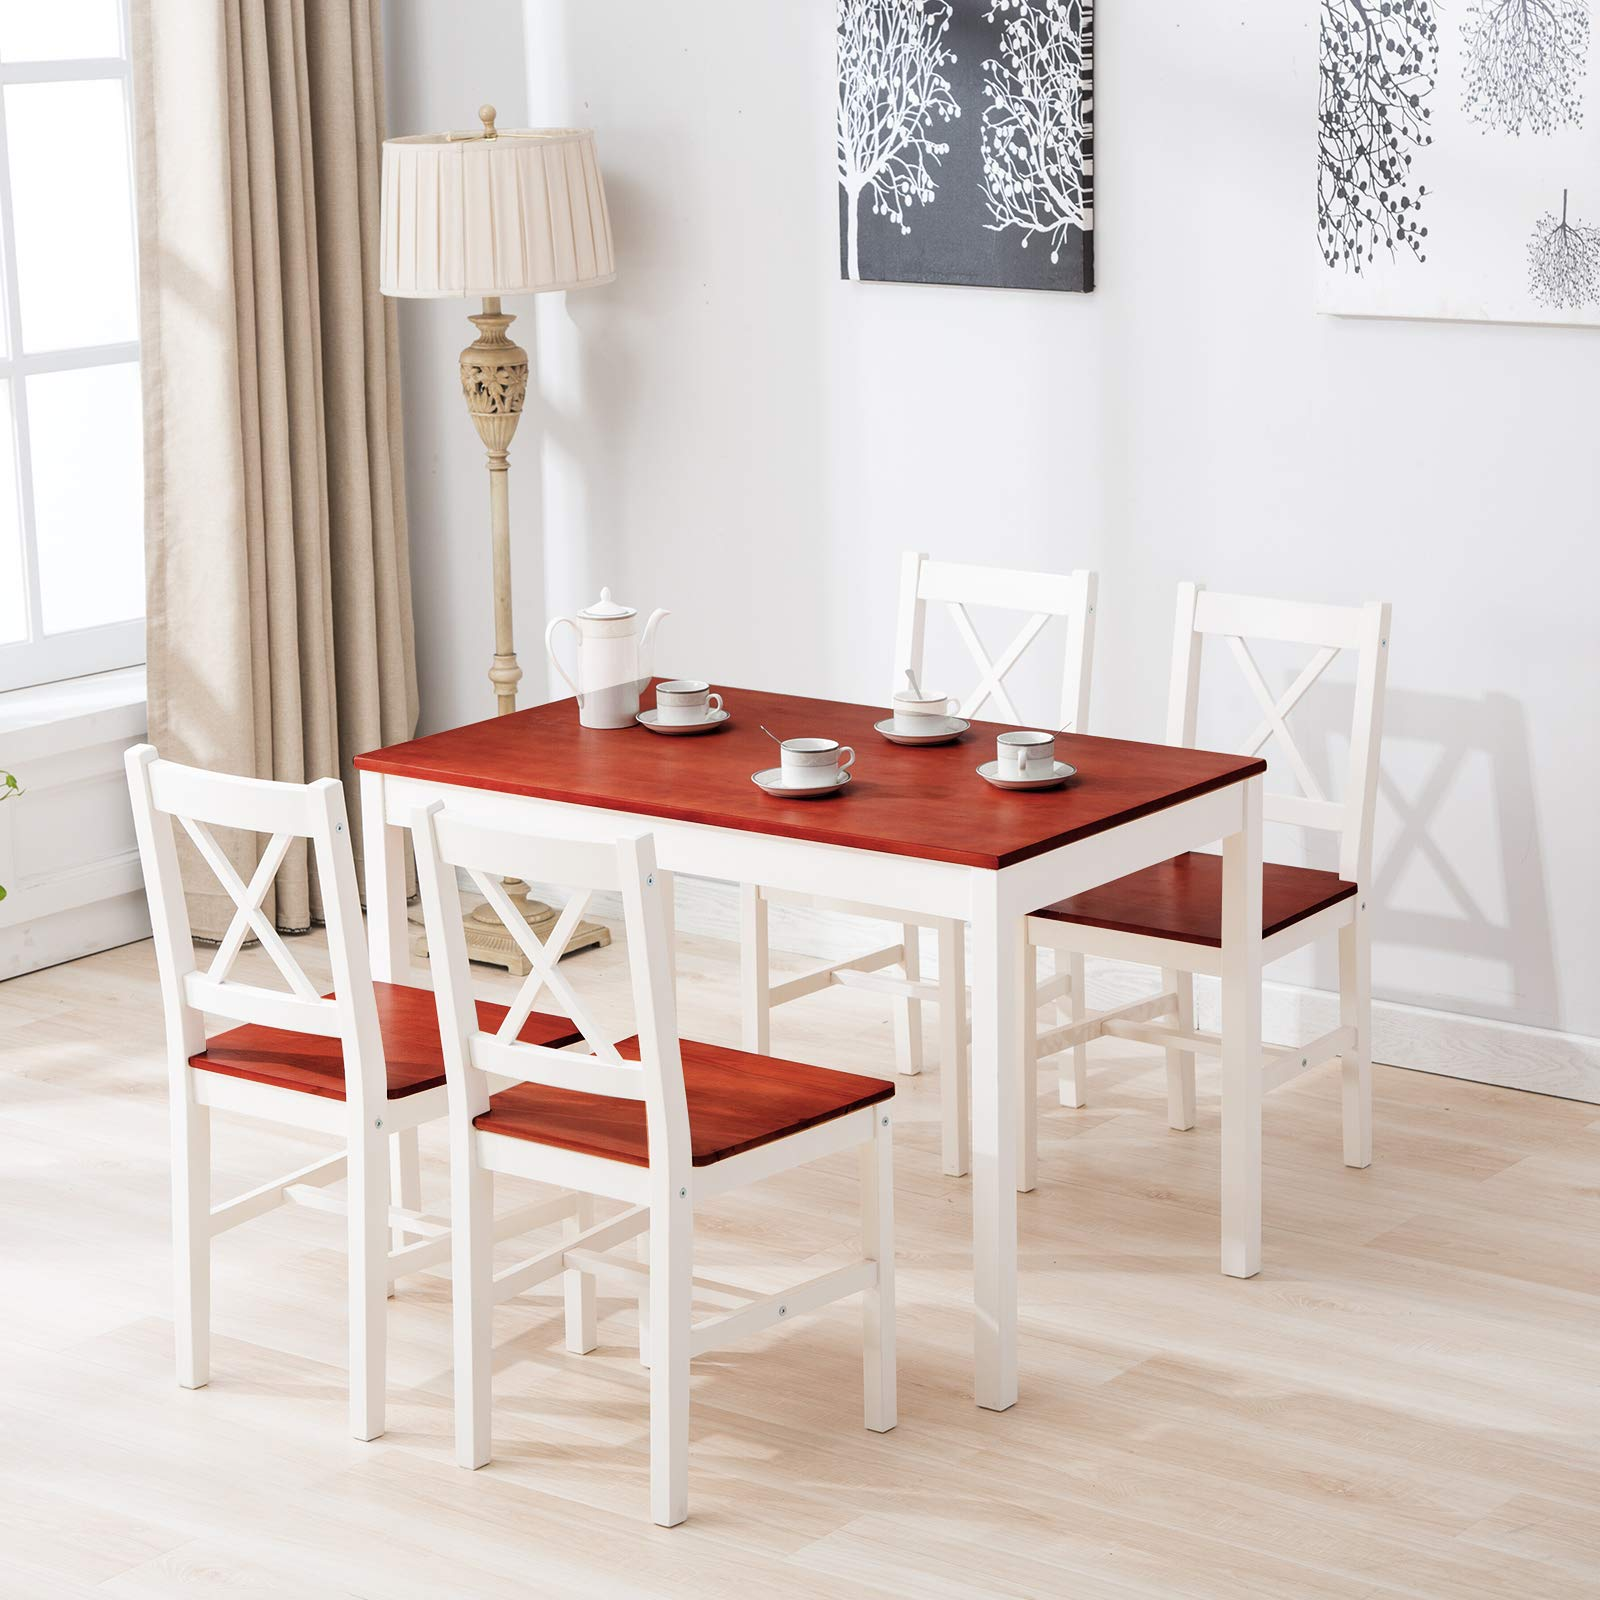 mecor 5 Piece Kitchen Dining Table Set, 4 Wood Chairs Dinette Table Kitchen Room Furniture, Red by mecor